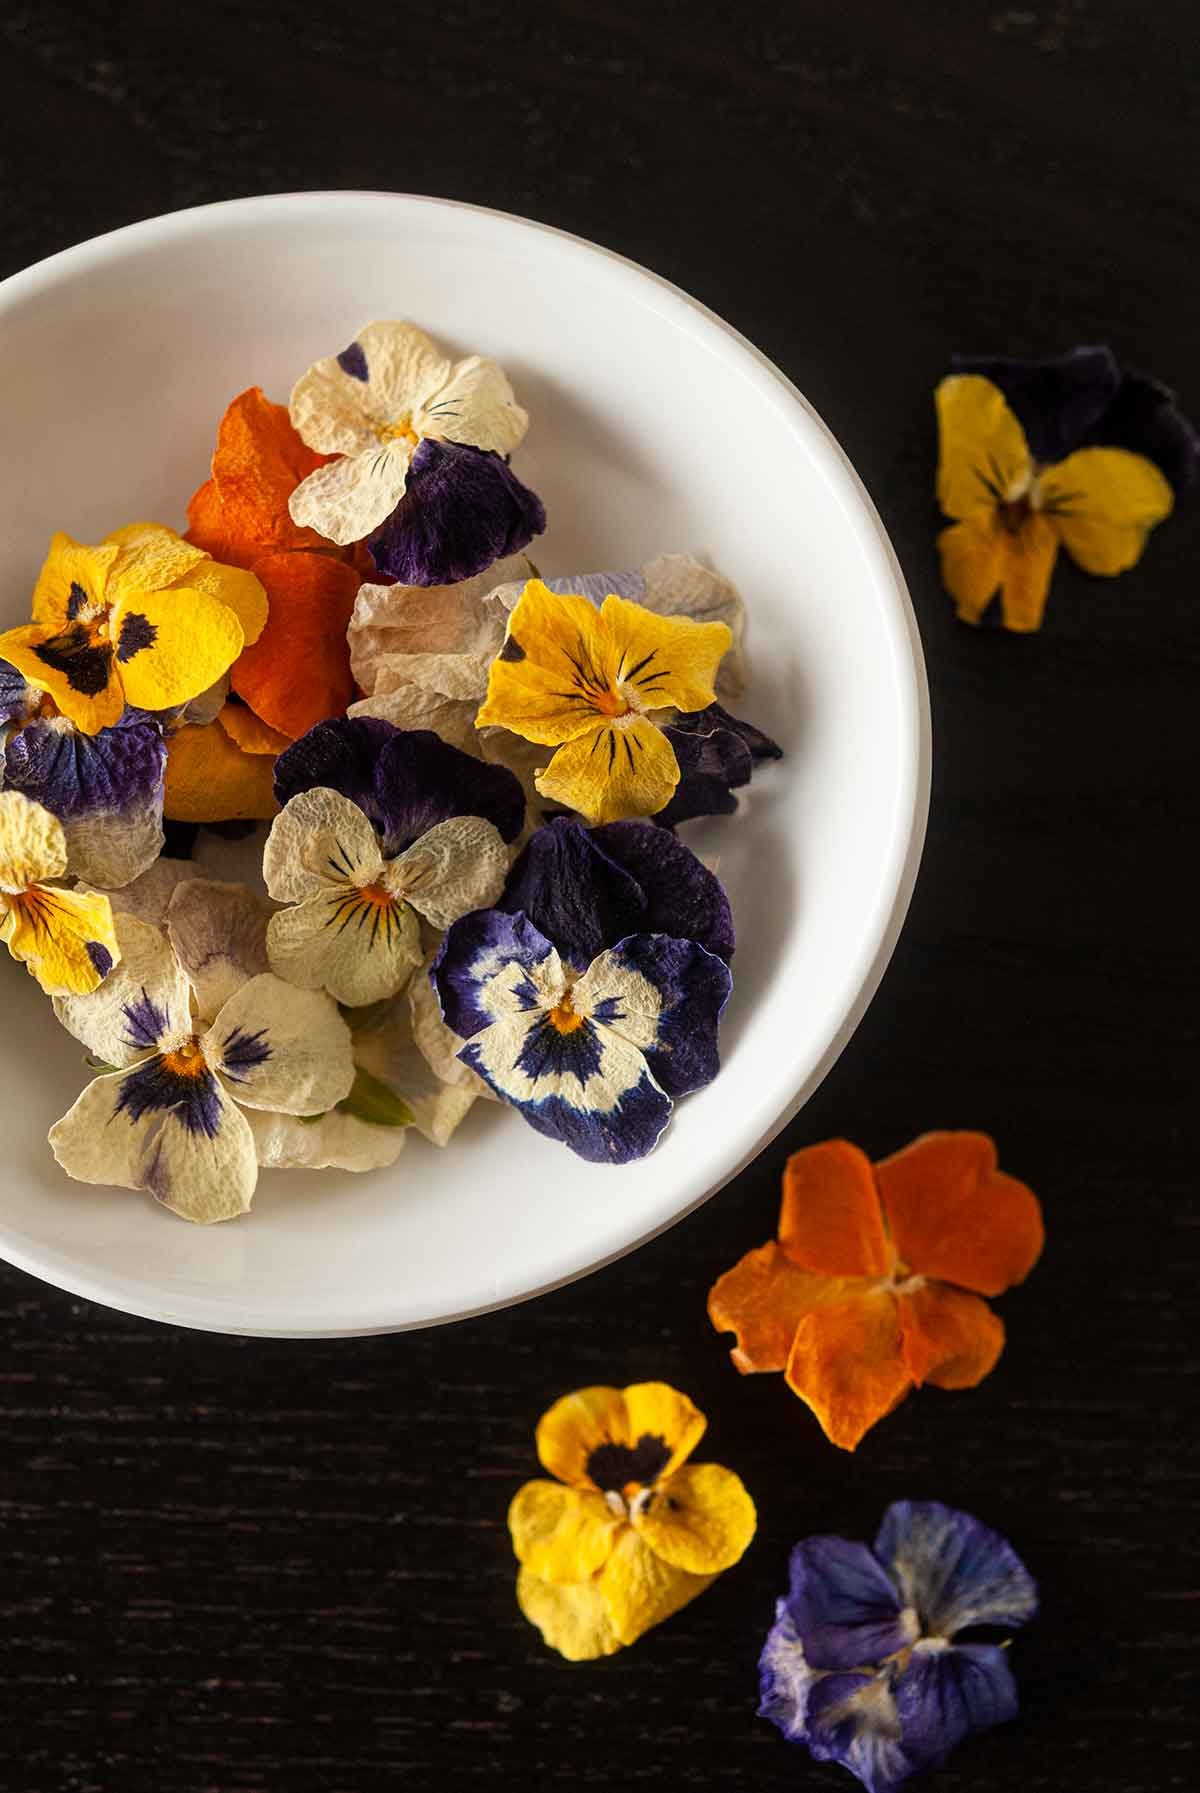 A bowl of small, dry pansies with a few flowers scattered around the bowl.